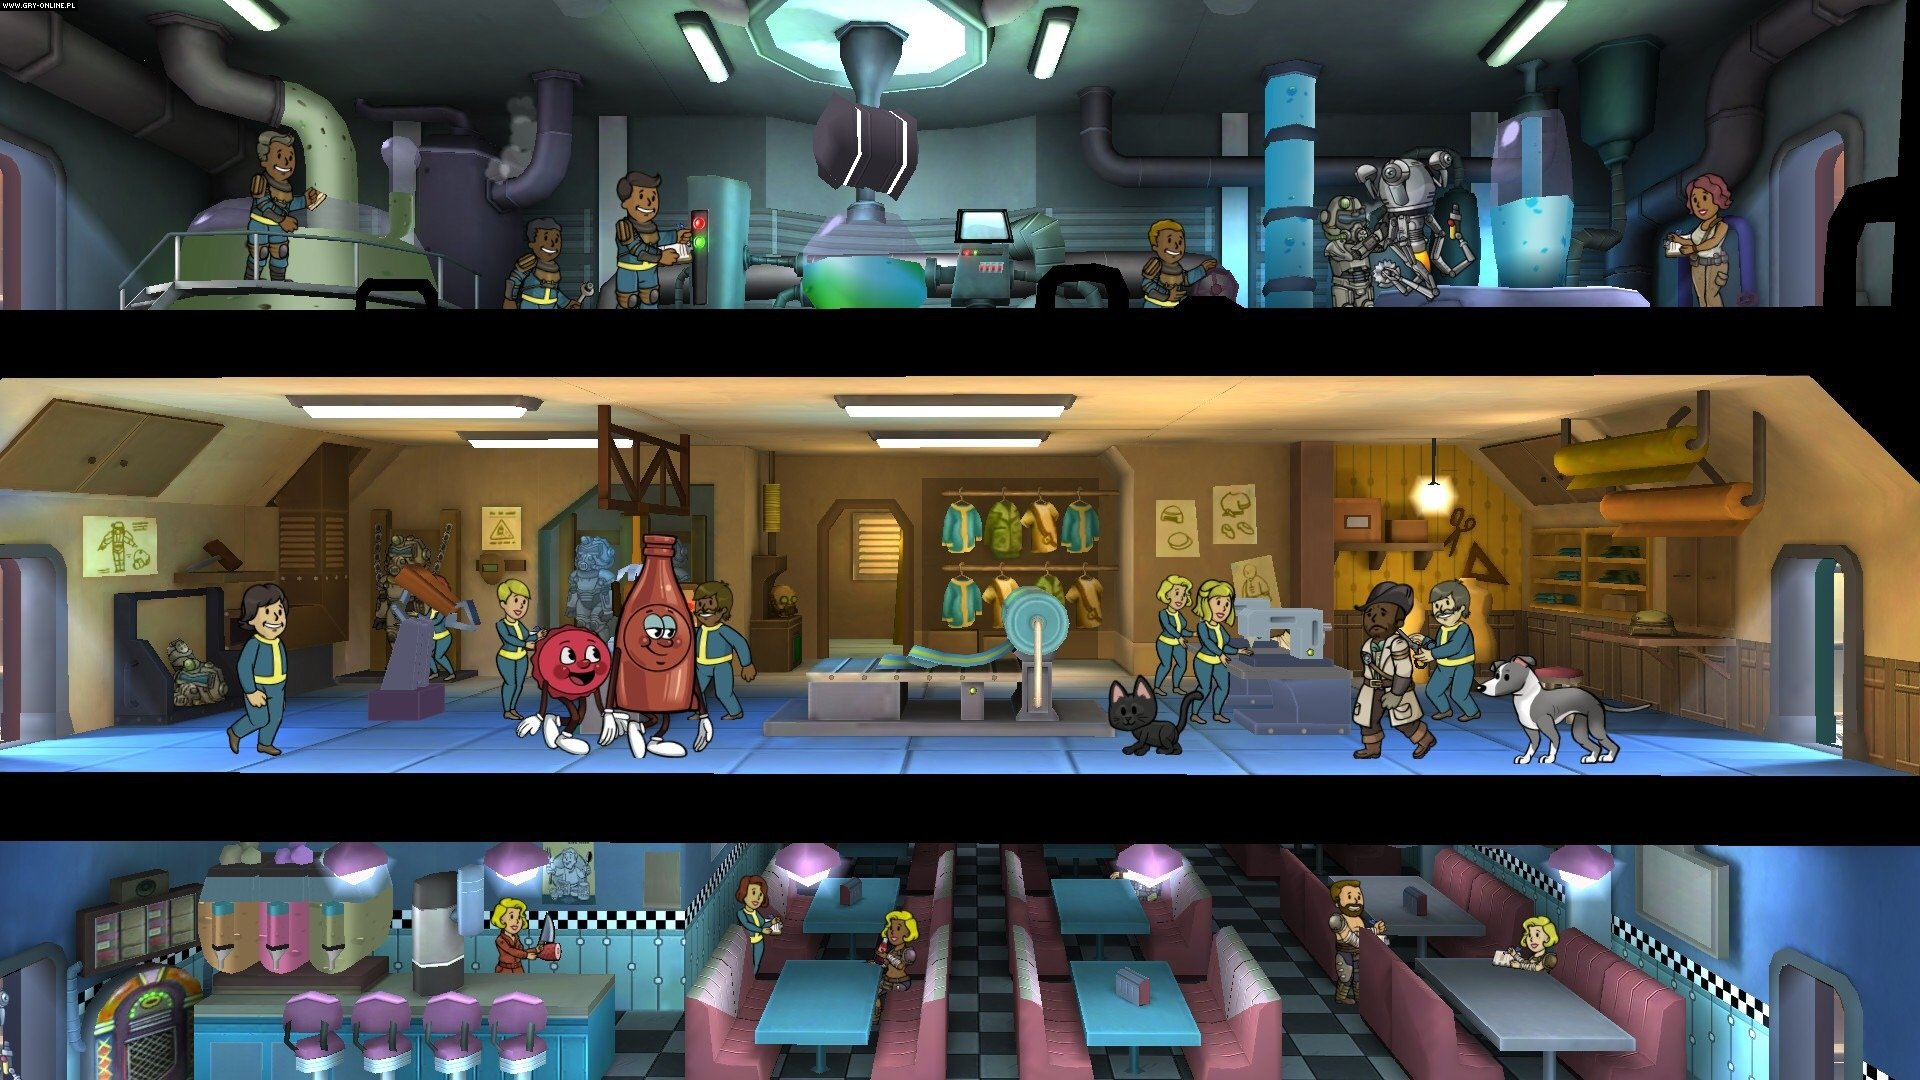 Fallout Shelter PC, PS4, XONE, AND, iOS, Switch Gry Screen 5/19, Bethesda Softworks